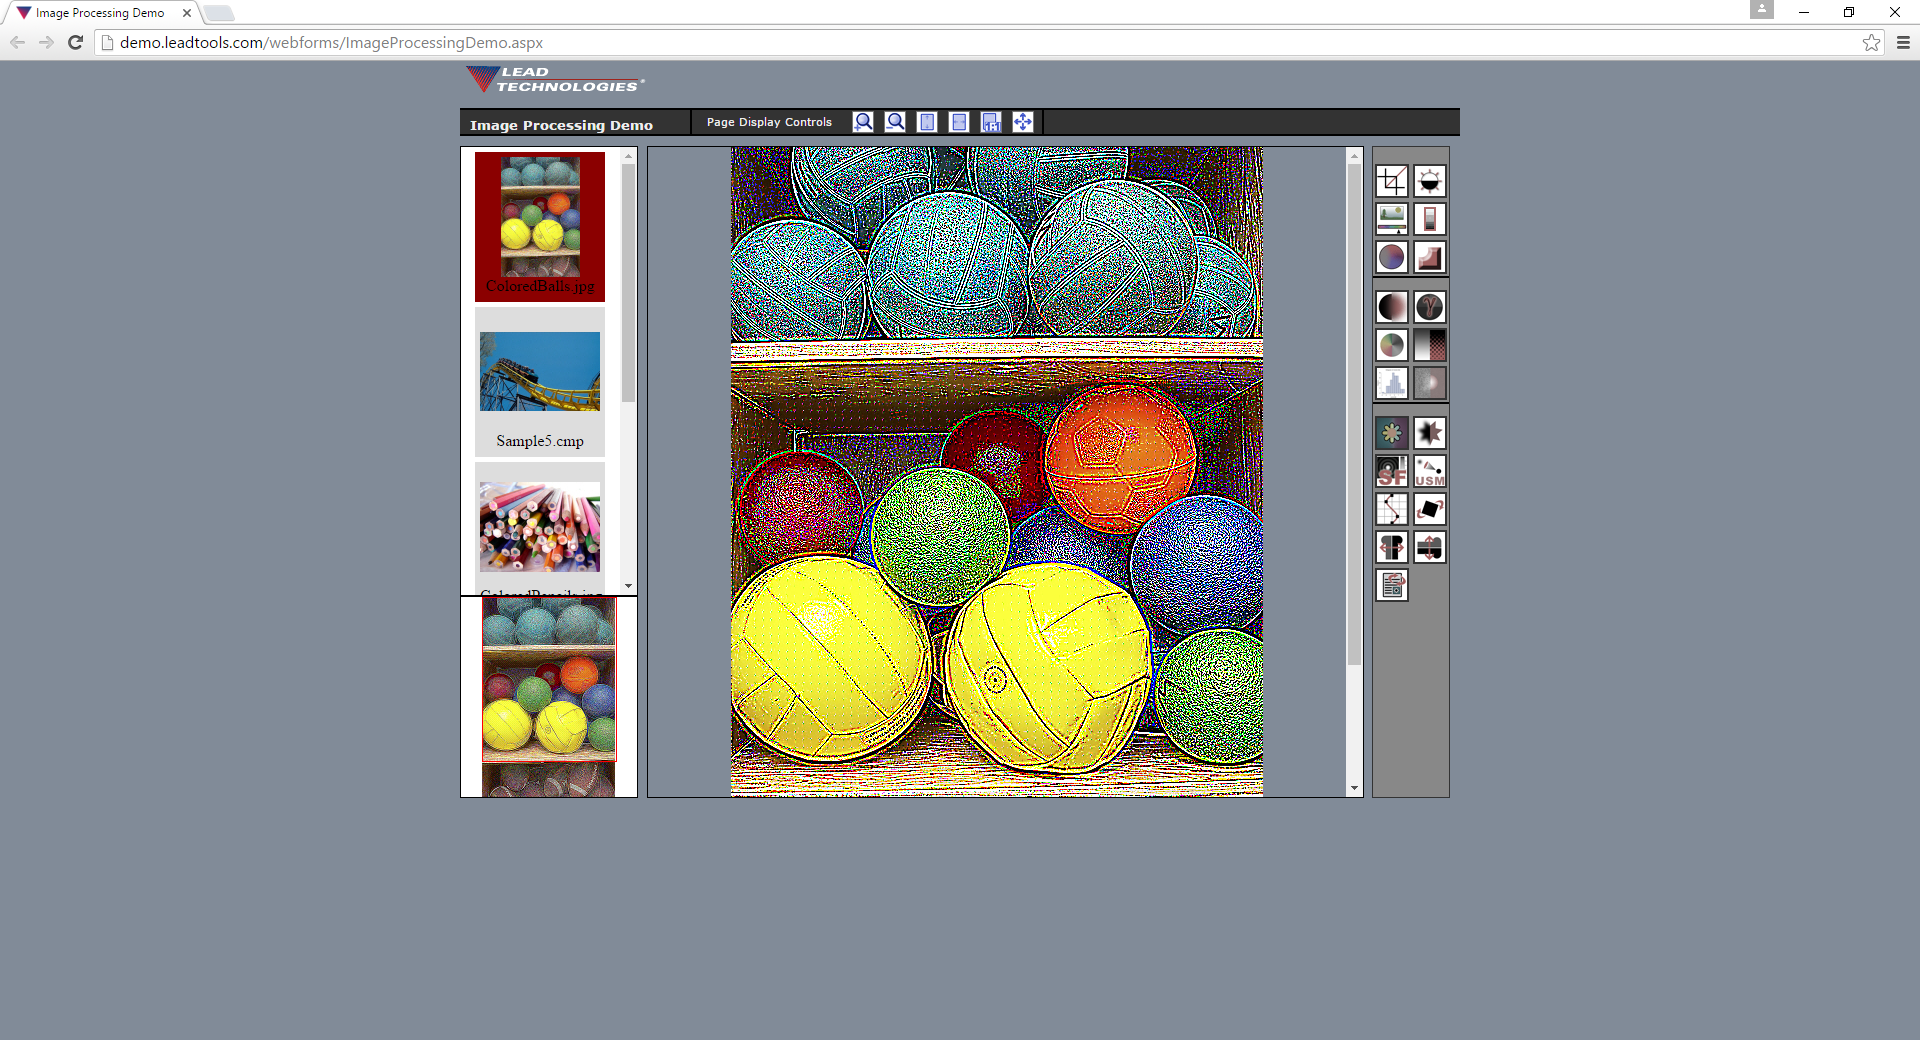 Web Service Image Processing 4